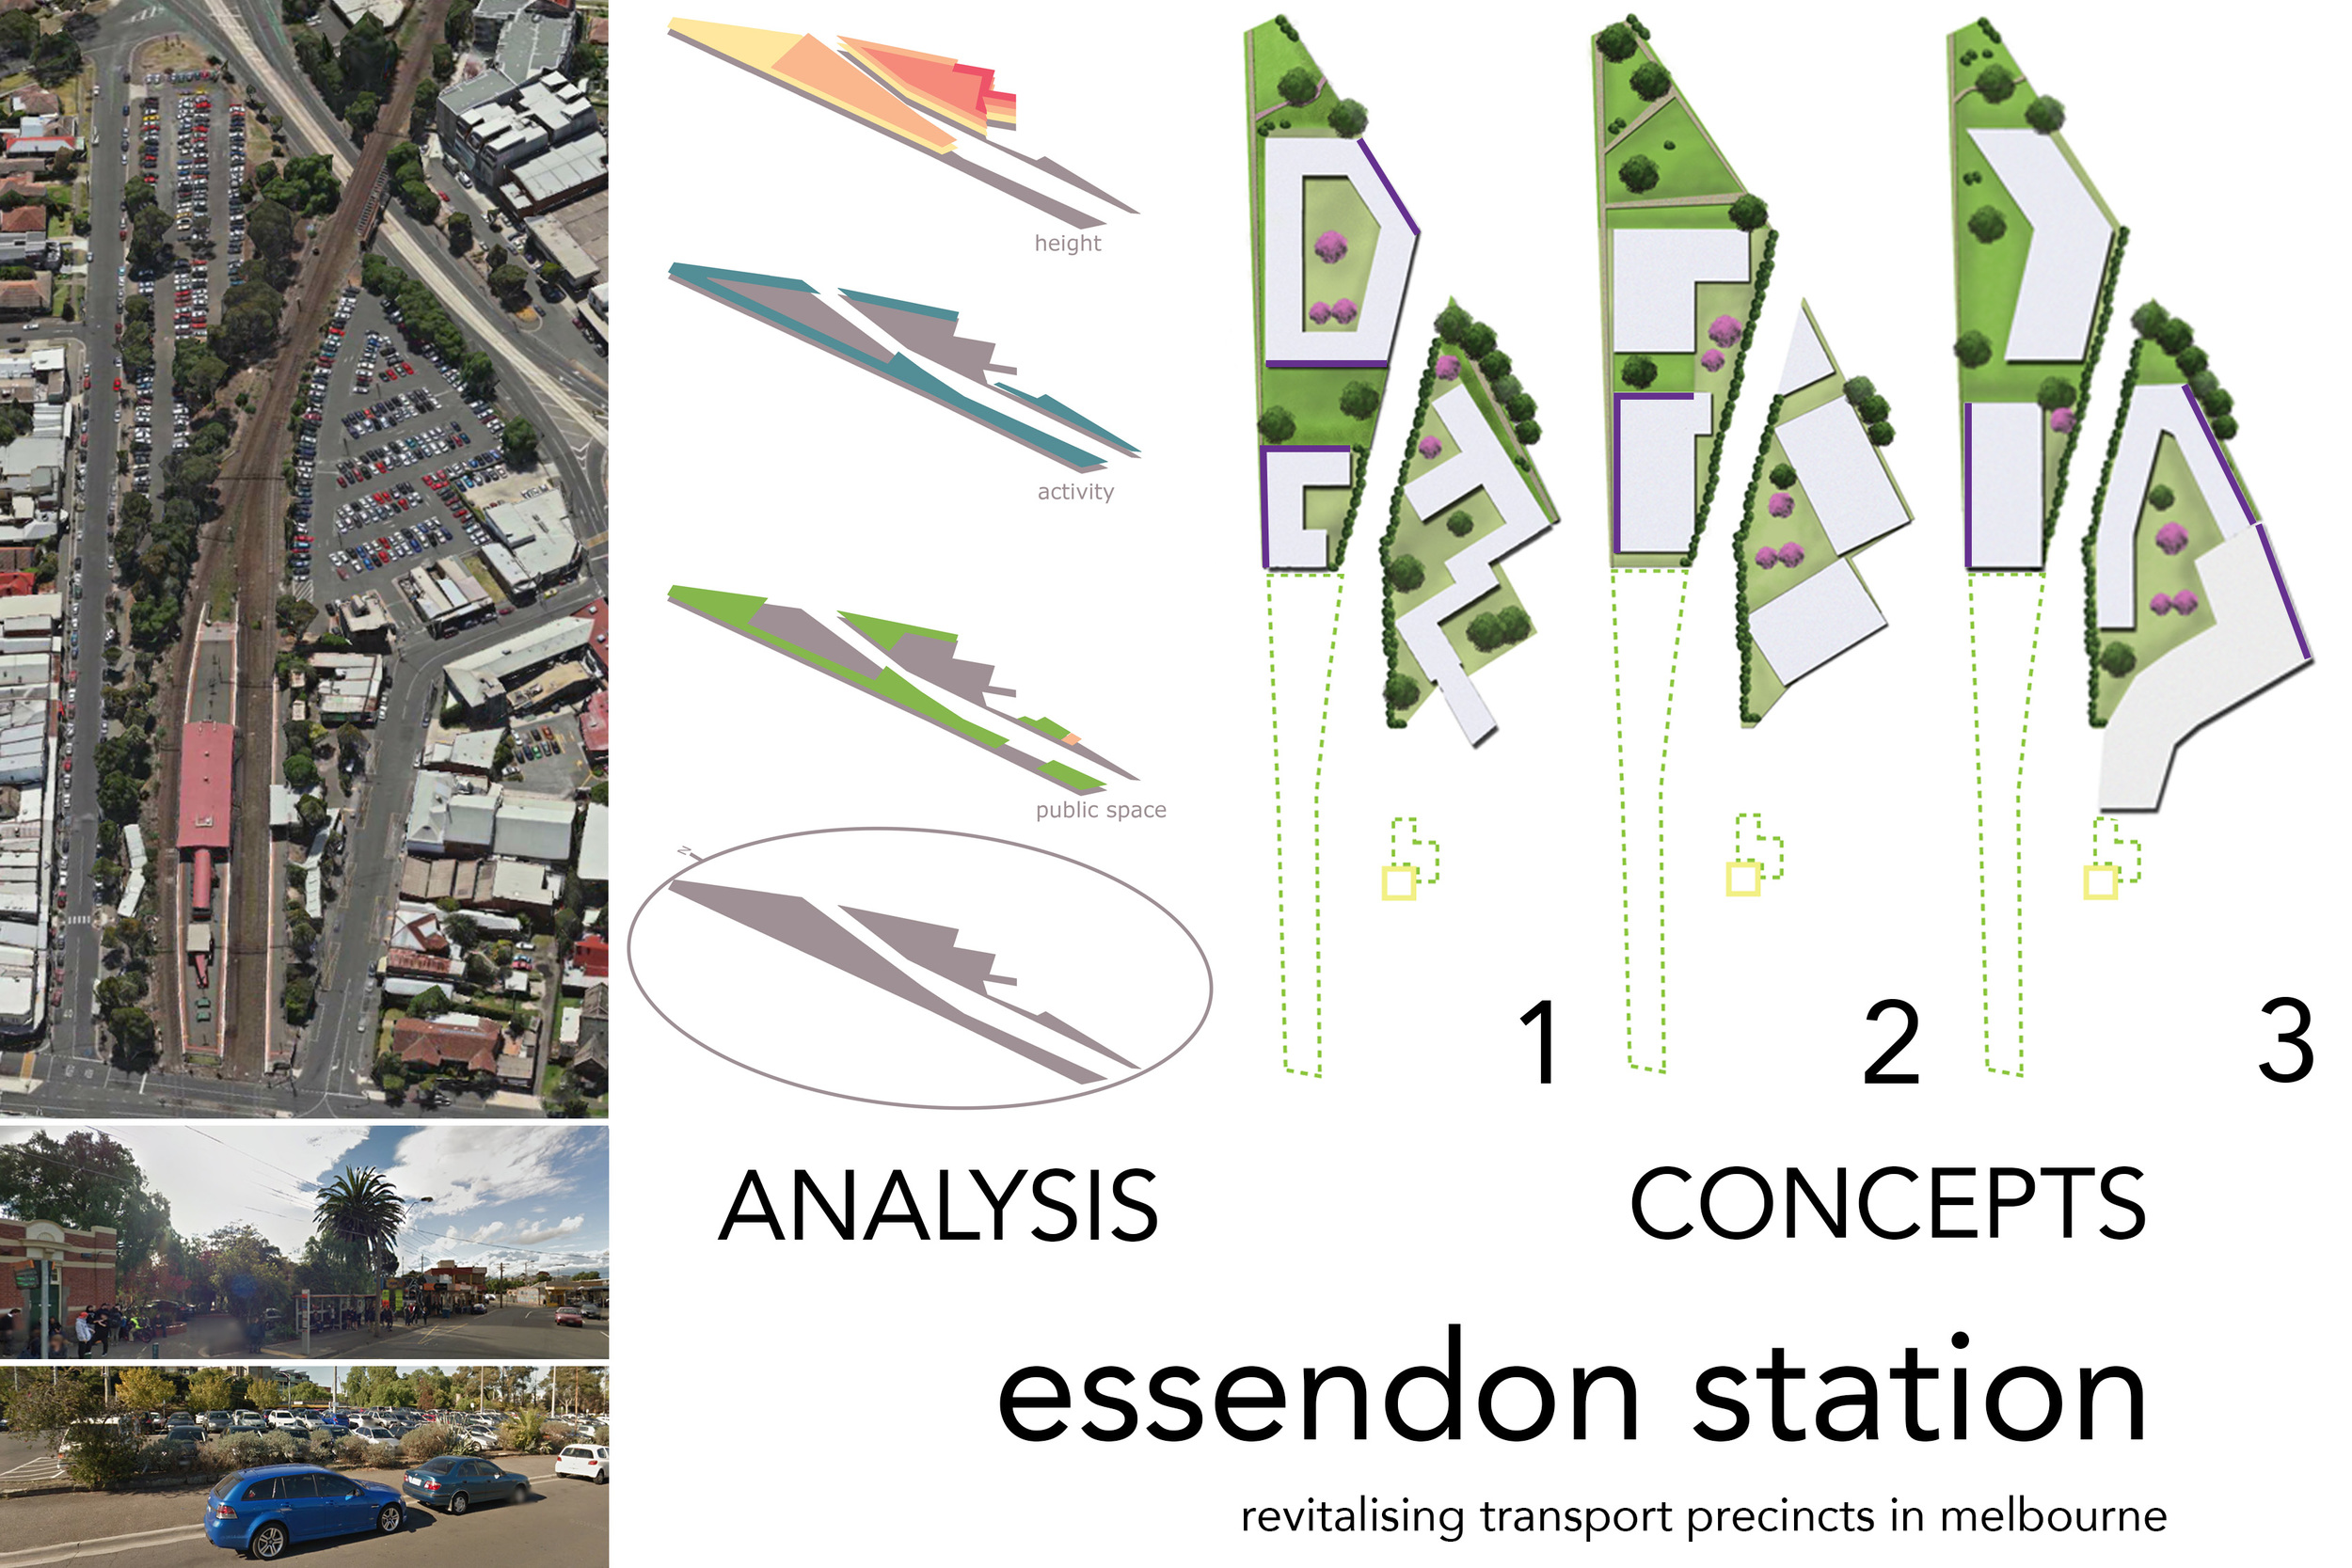 Essendon Station revitalization study by drawntocities.com